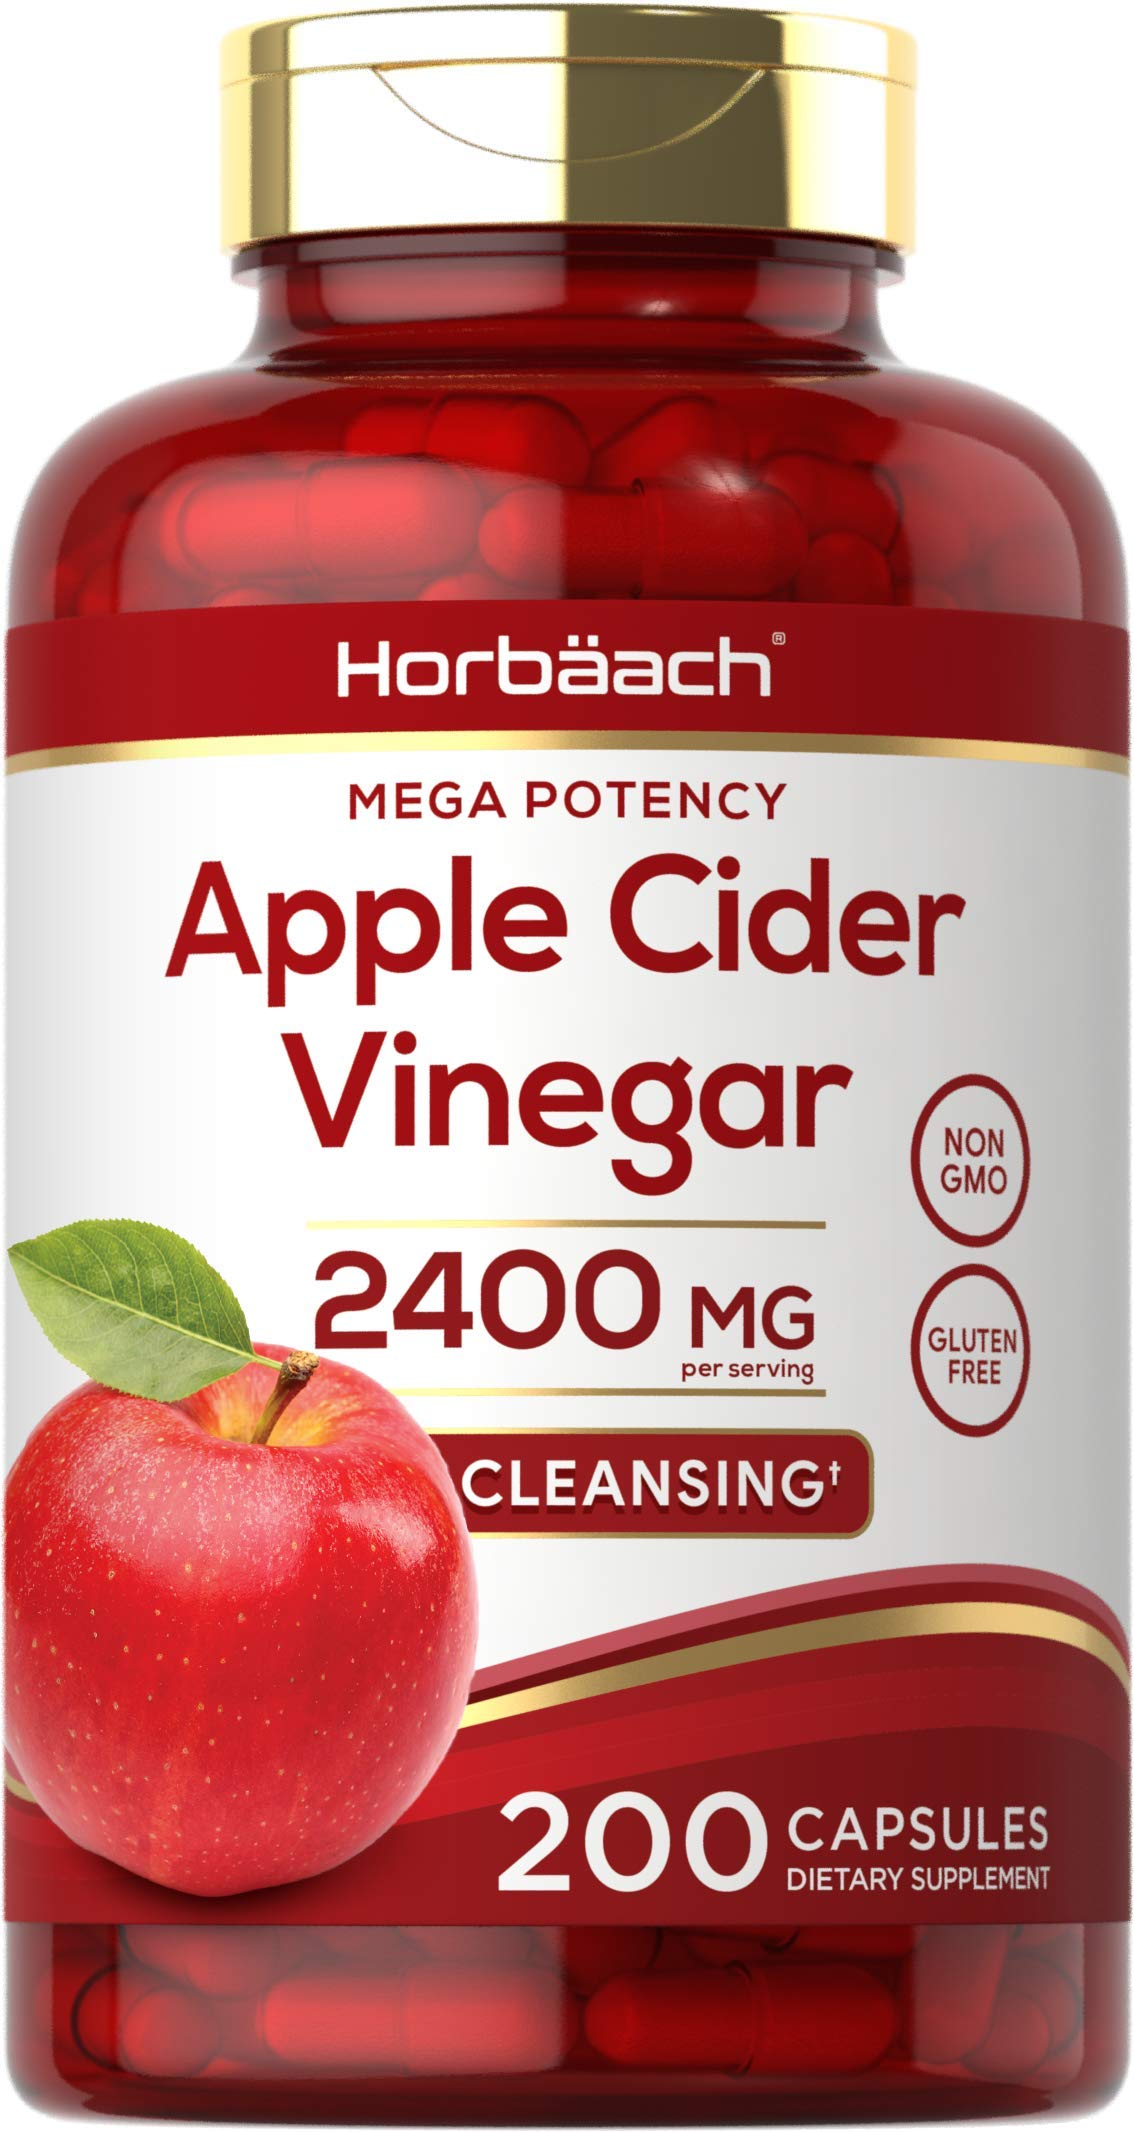 Apple Cider Vinegar Capsules | 2400mg | 200 Pills | Non-GMO, Gluten Free | by Horbaach